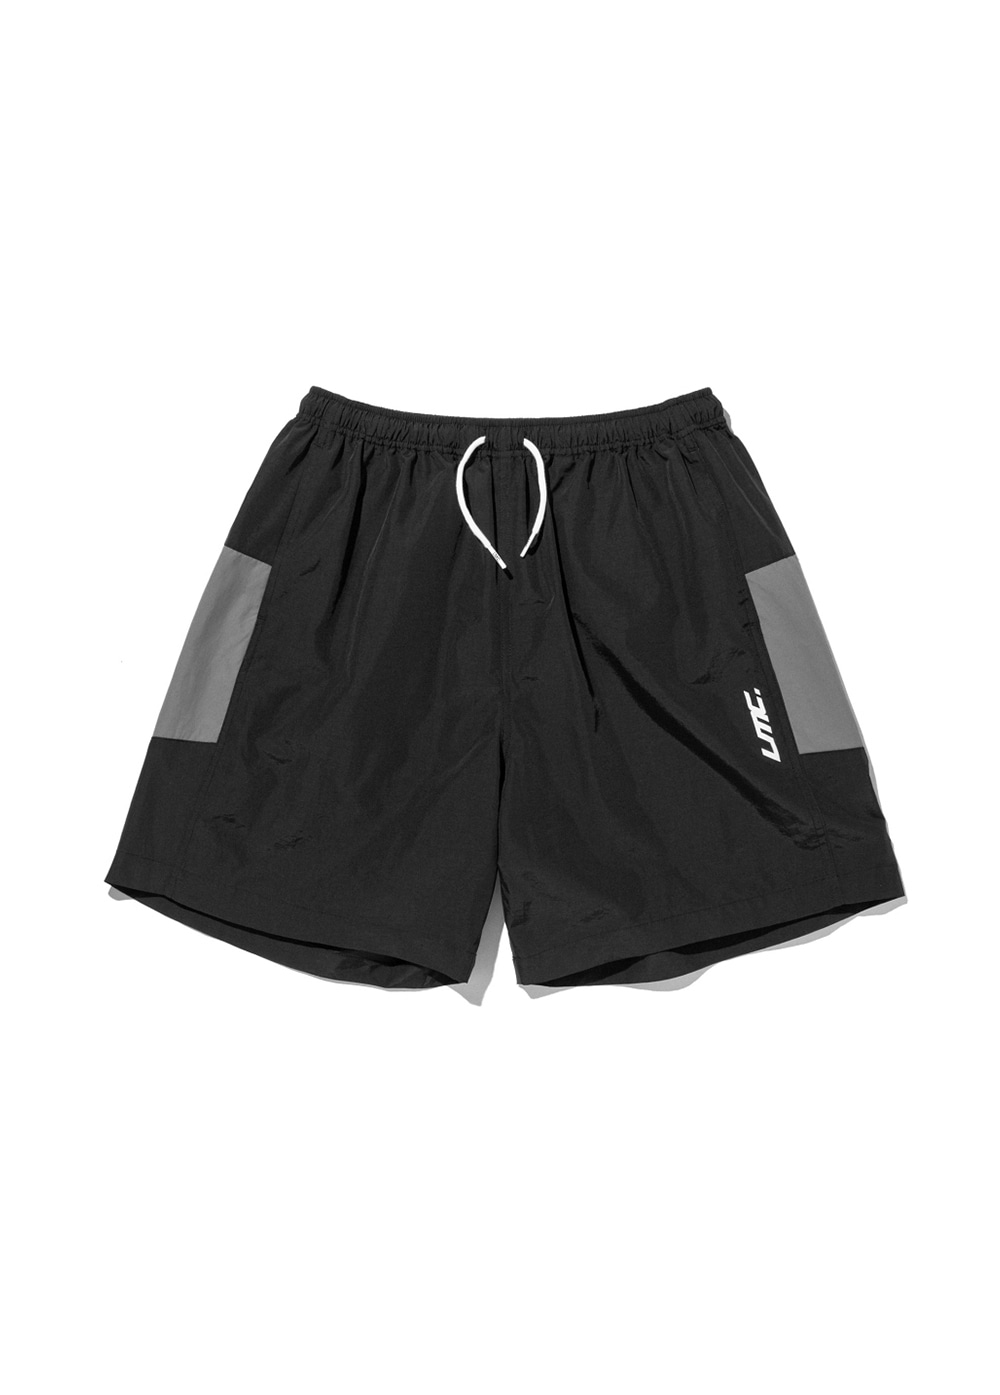 LMC ZIPPER LEF TRACK SUIT SHORTS black